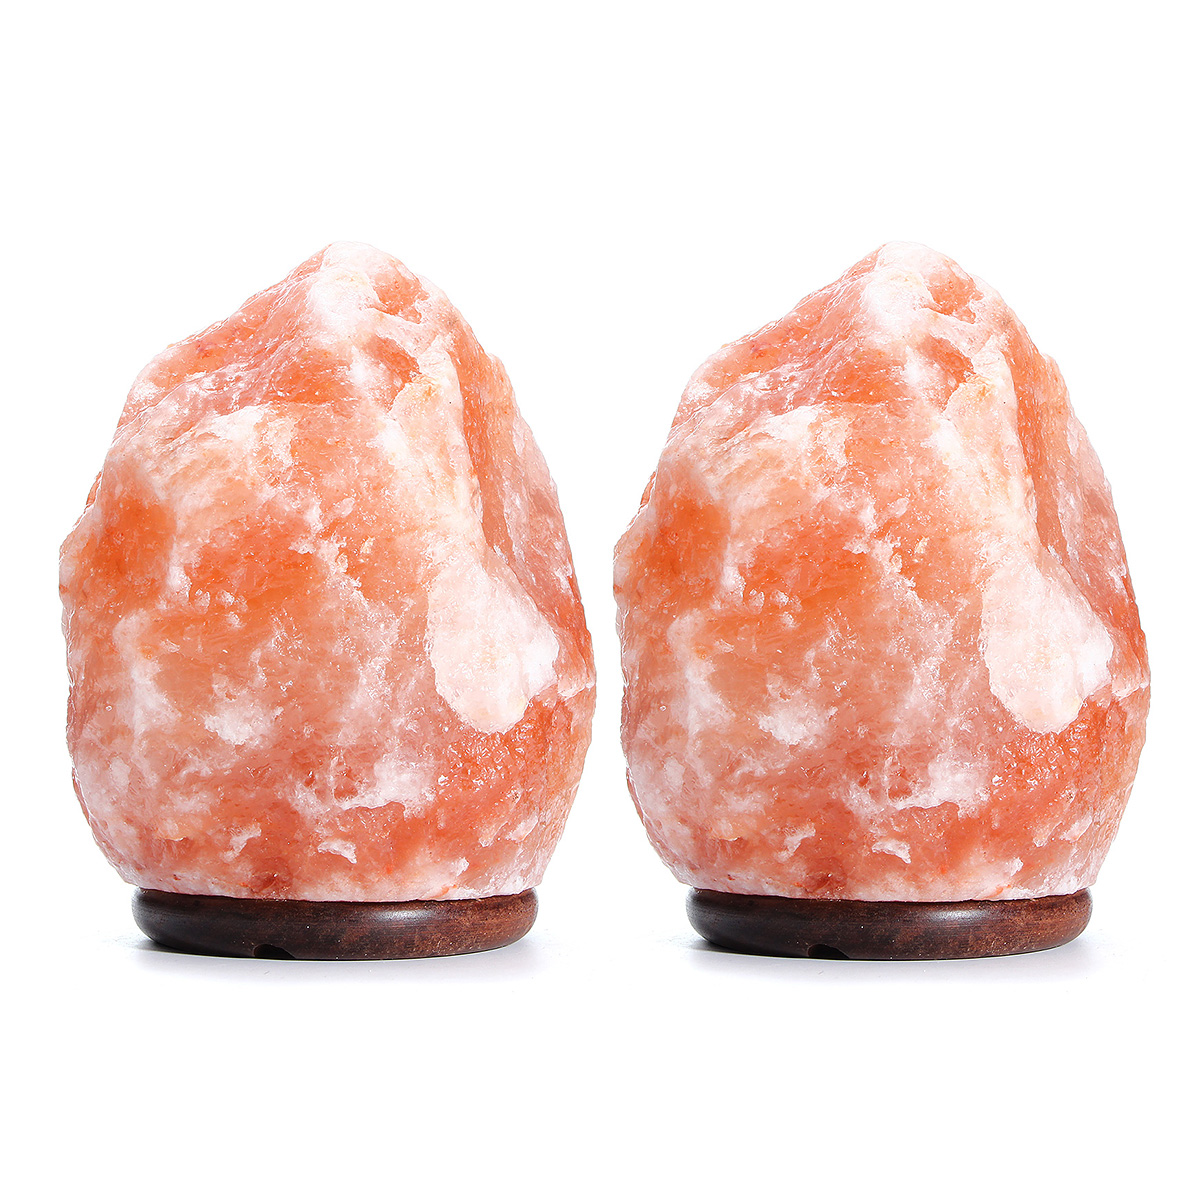 Rock Salt Lamps Reviews : 30x18CM Natural Himalayan Ionic Air Purifier Rock Crystal Salt Lamp Table Night Light Alex NLD